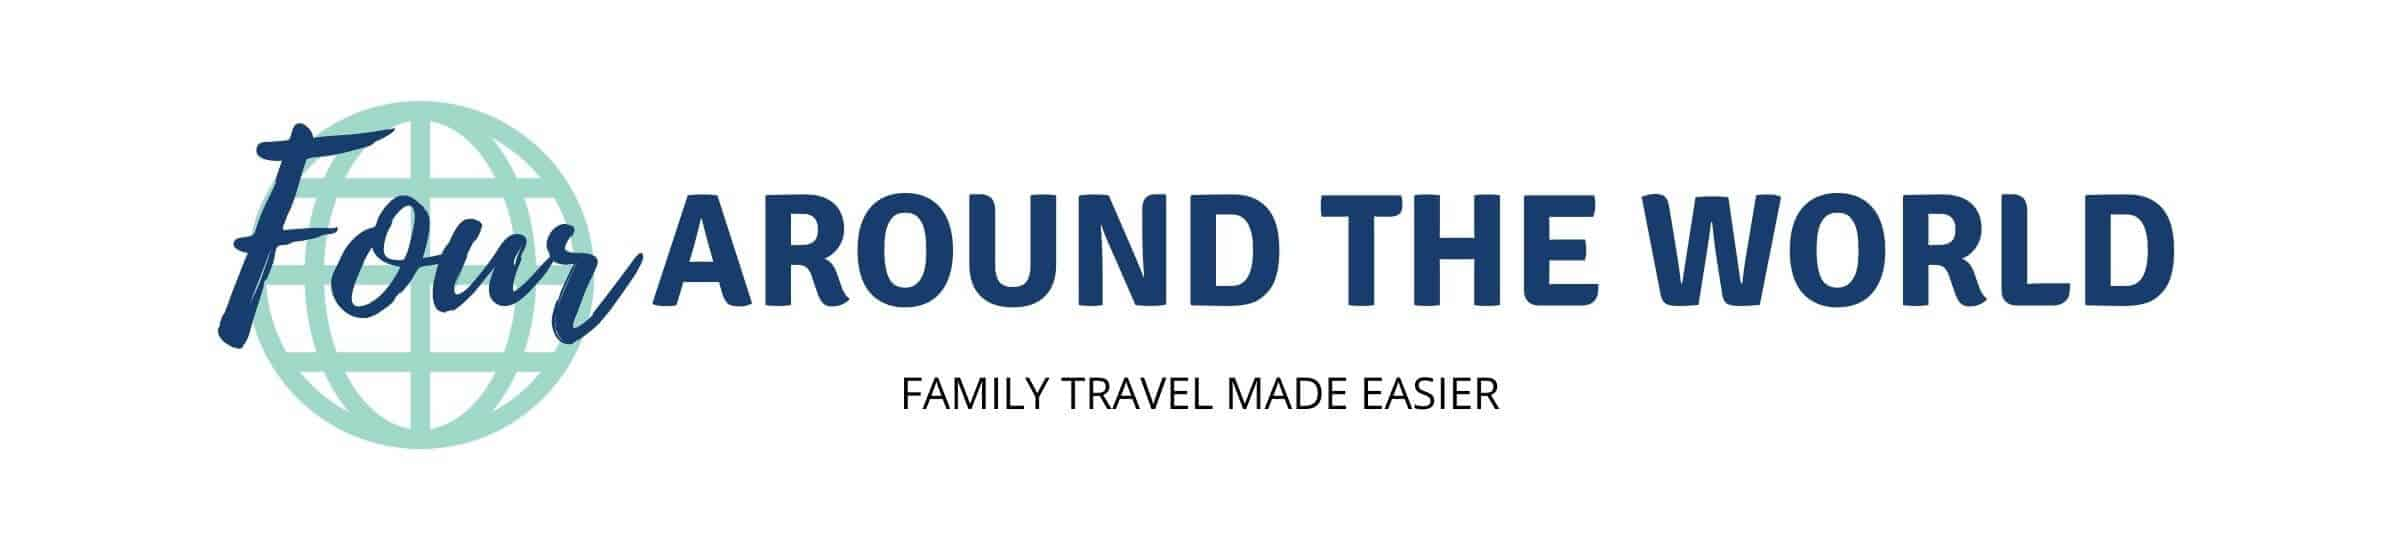 Four Around the World family travel blog banner